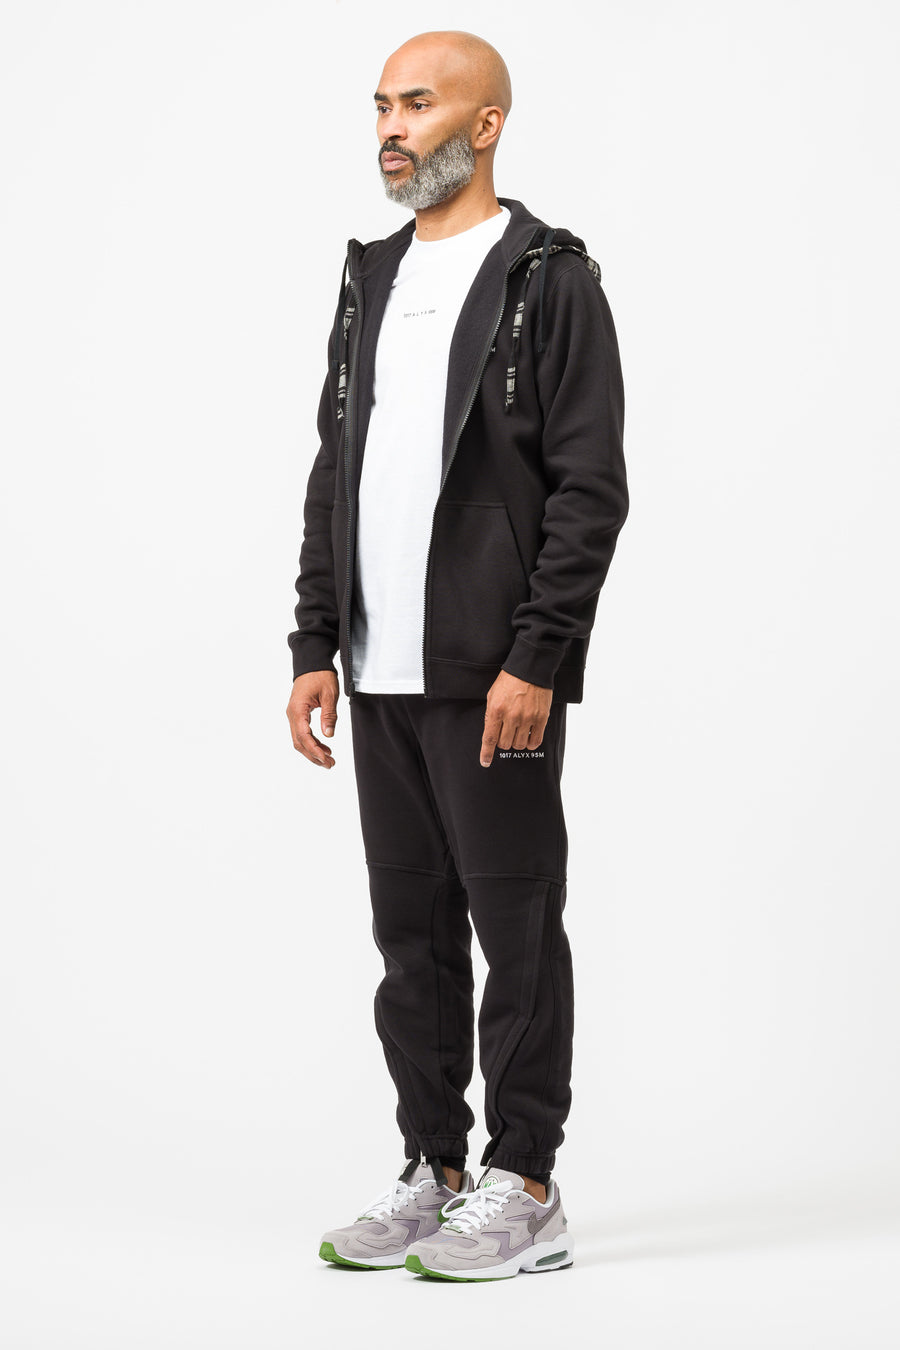 1017 ALYX 9SM Nike Zip Hoodie Check in Black/White - Notre